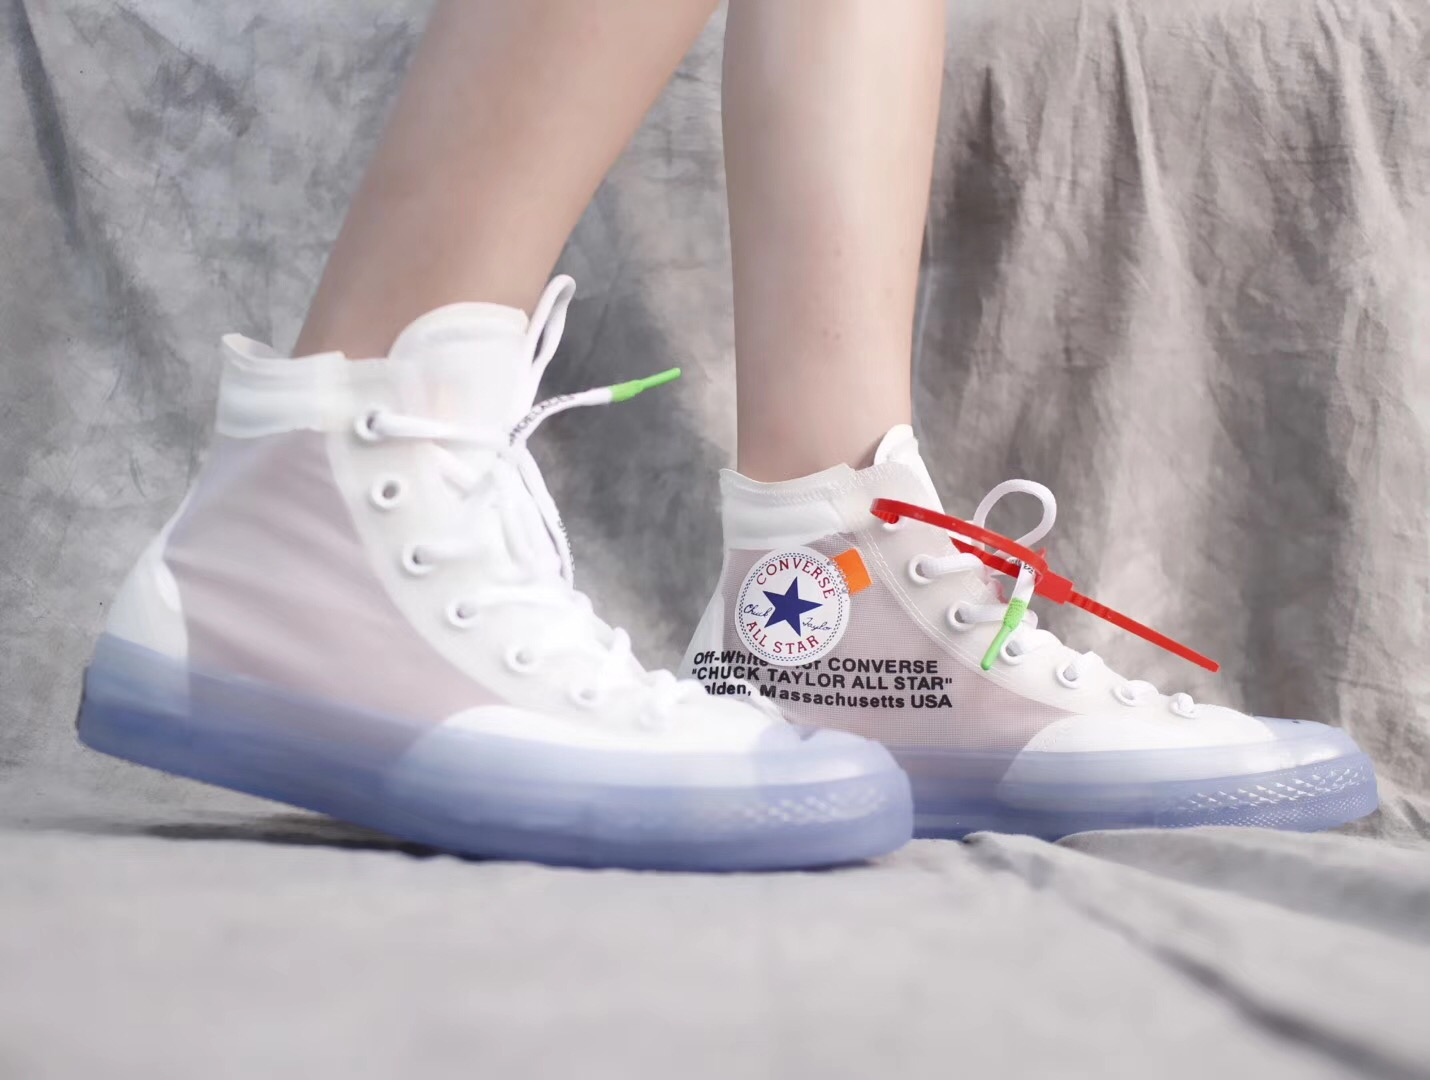 Giày Converse All Star 1970s Off-White màu trong